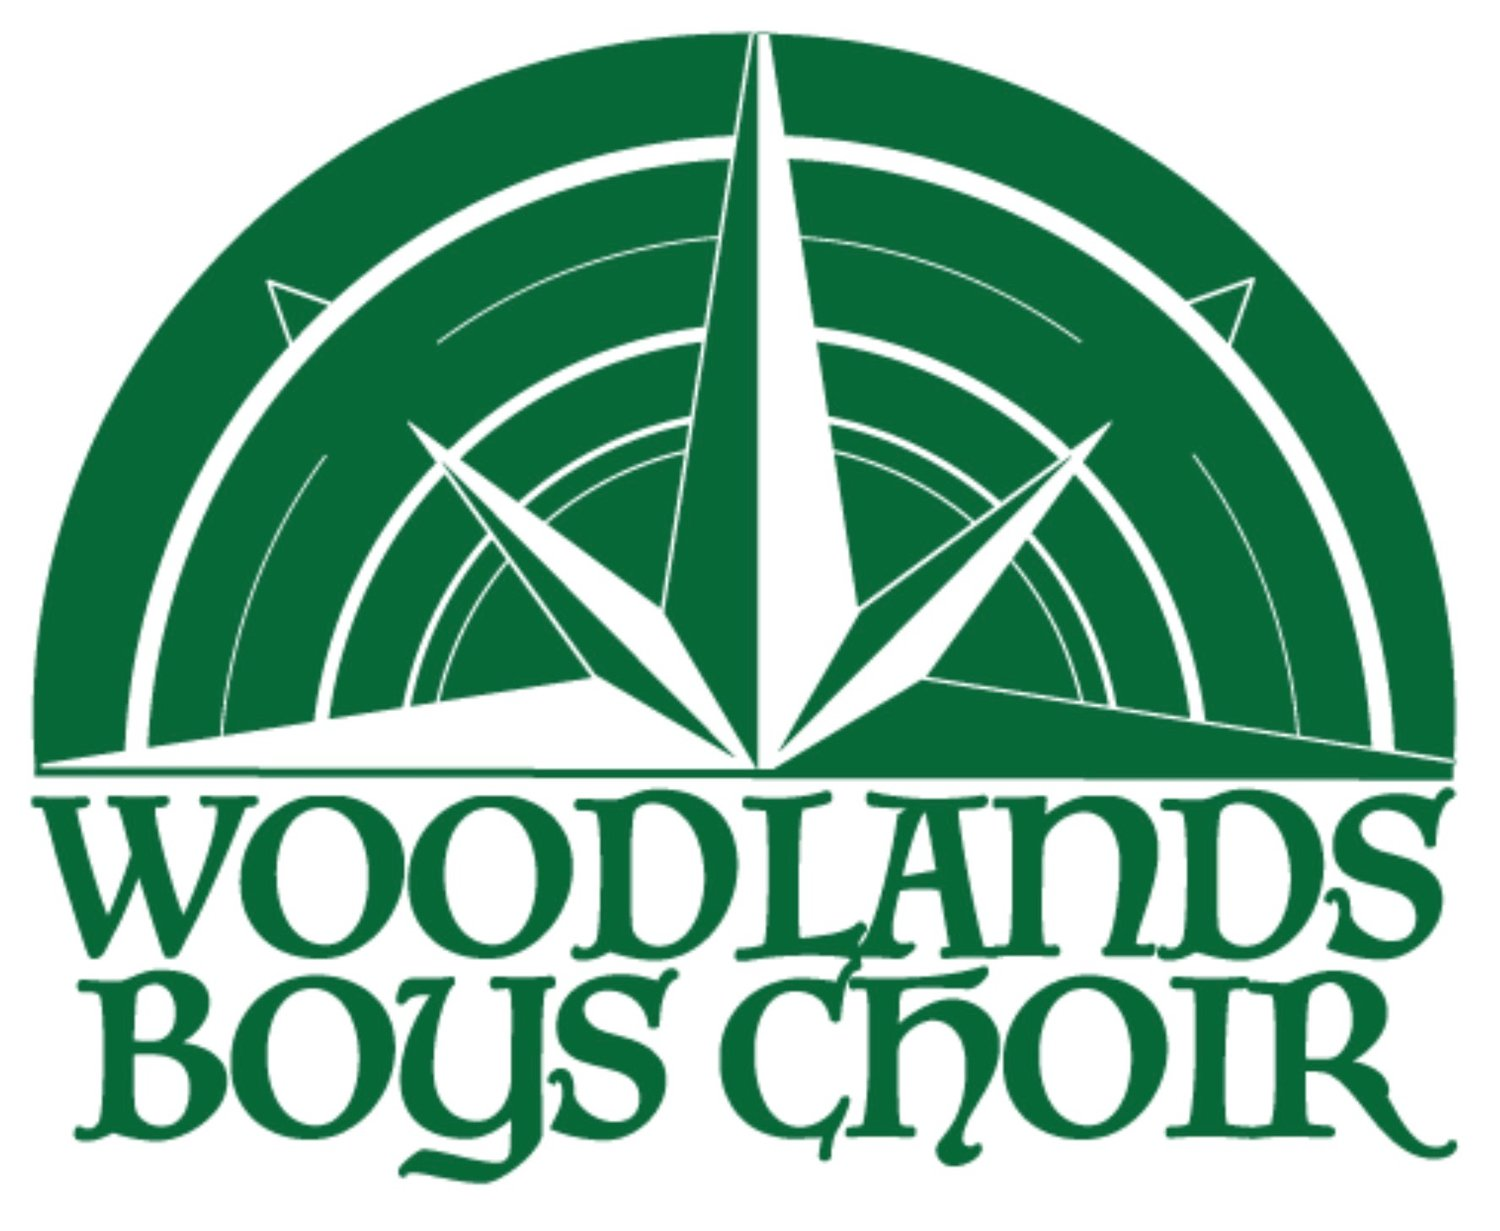 Woodlands Boys Choir